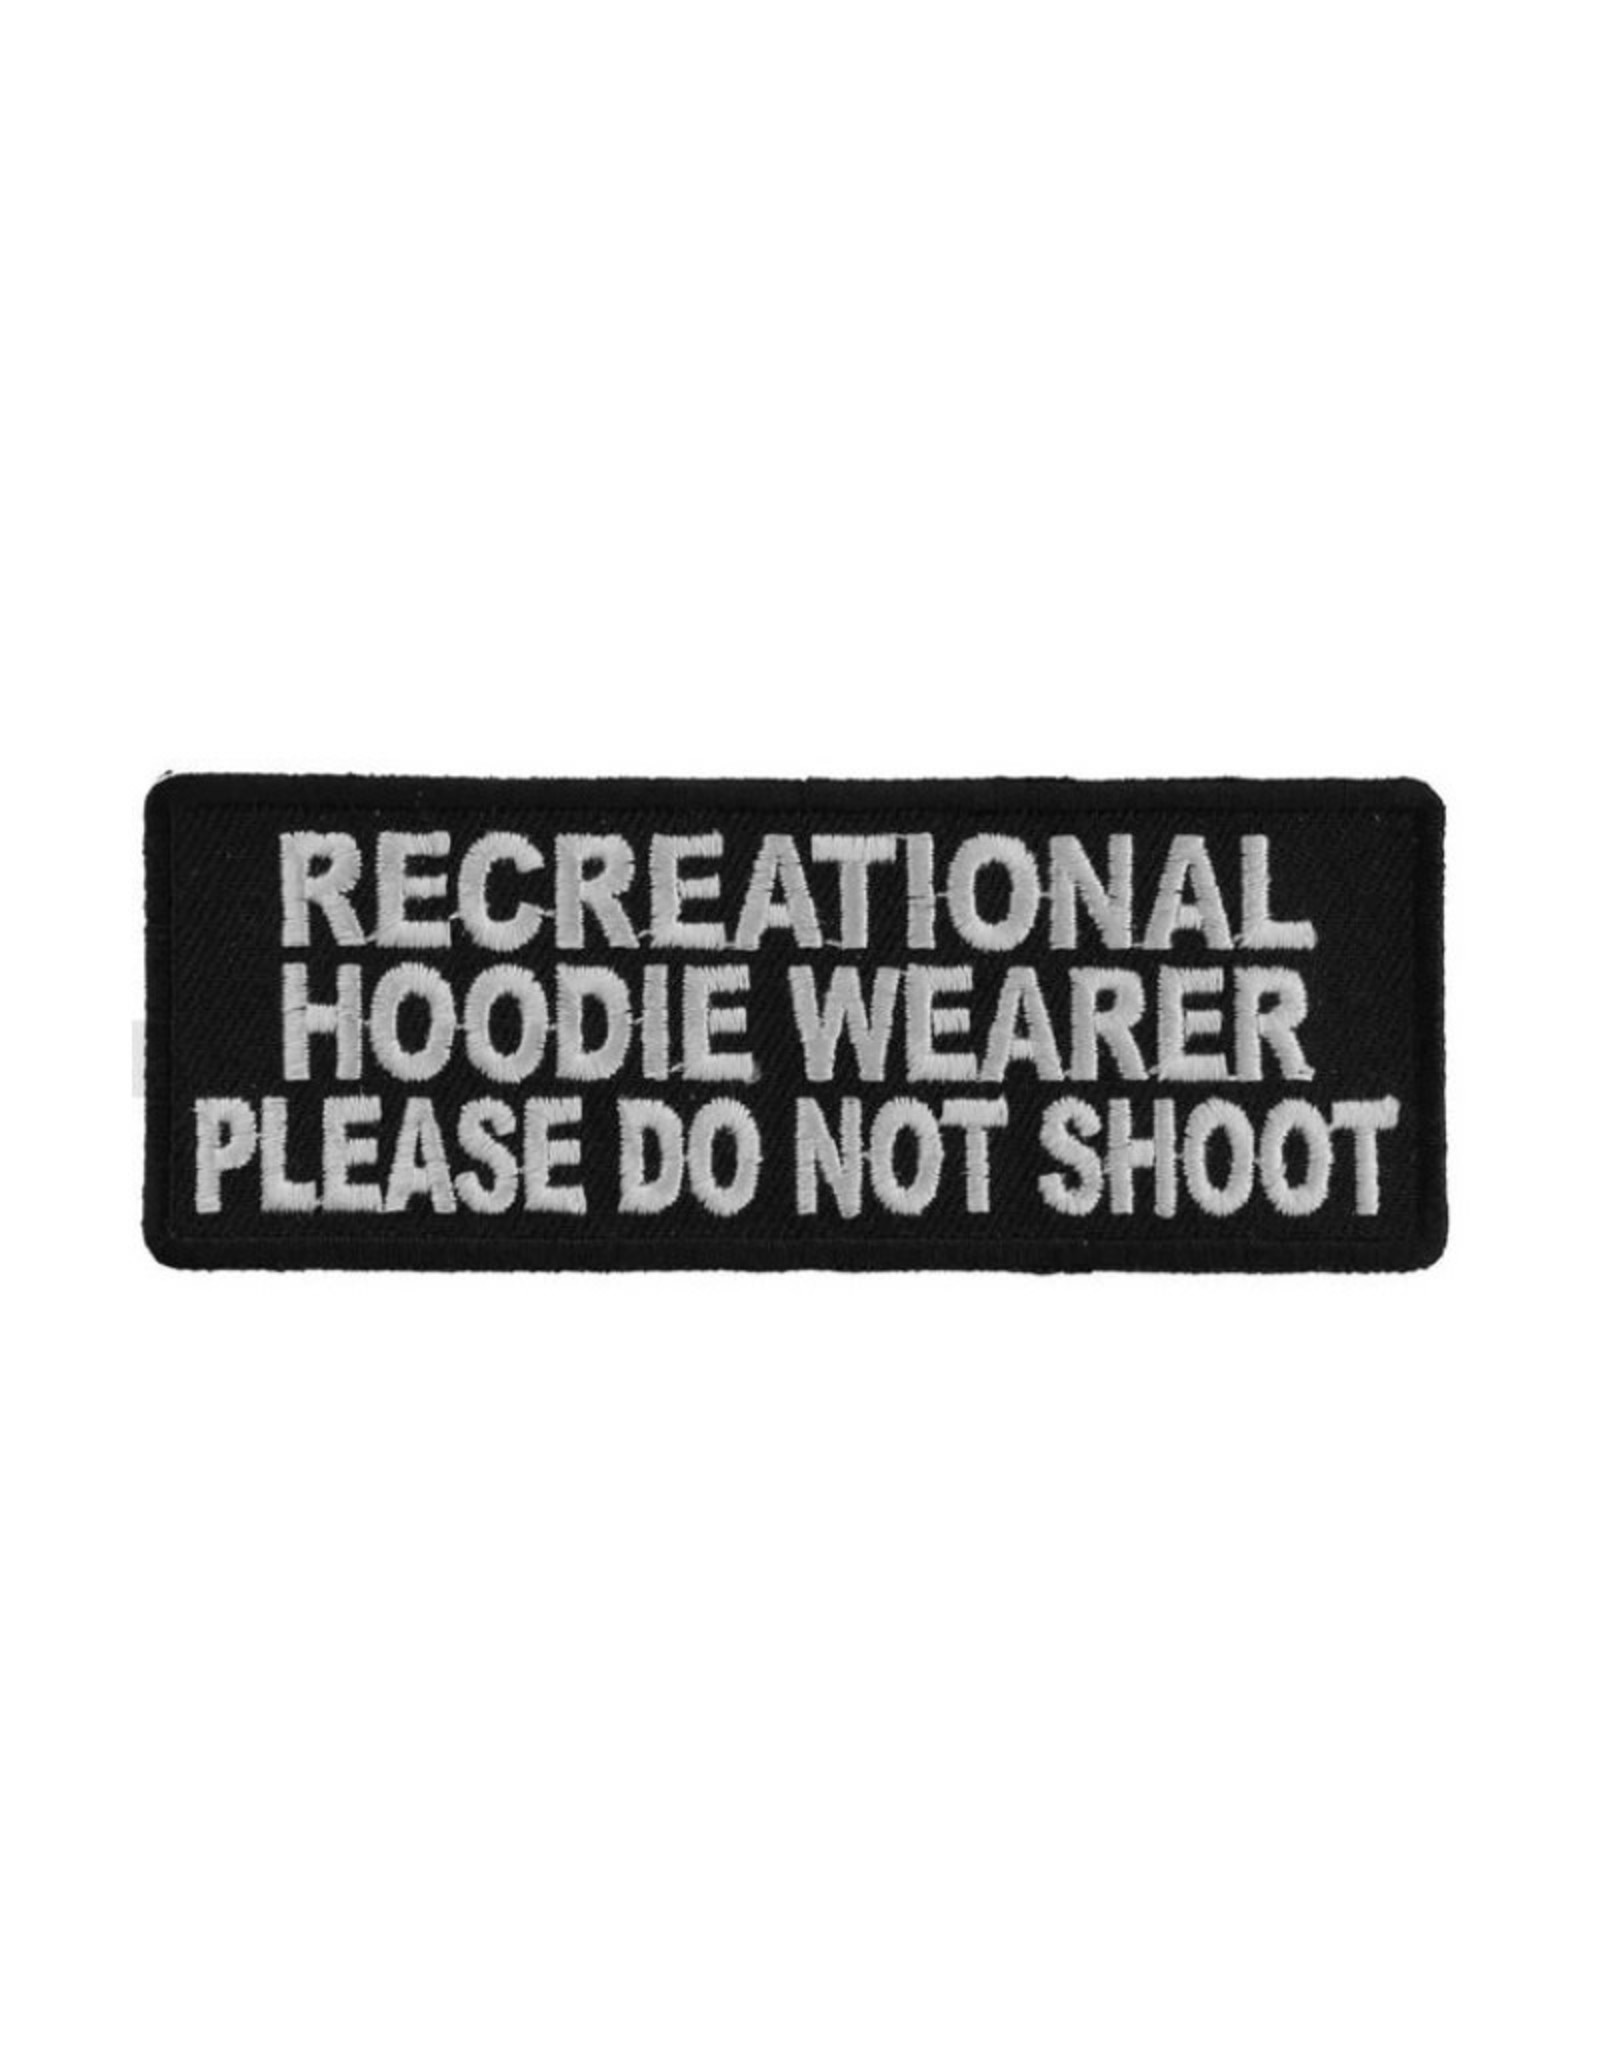 """MidMil Embroidered Patch """"Recreational hoodie wearer, please don't shoot"""" 4"""" wide x 1.5"""" high Black"""